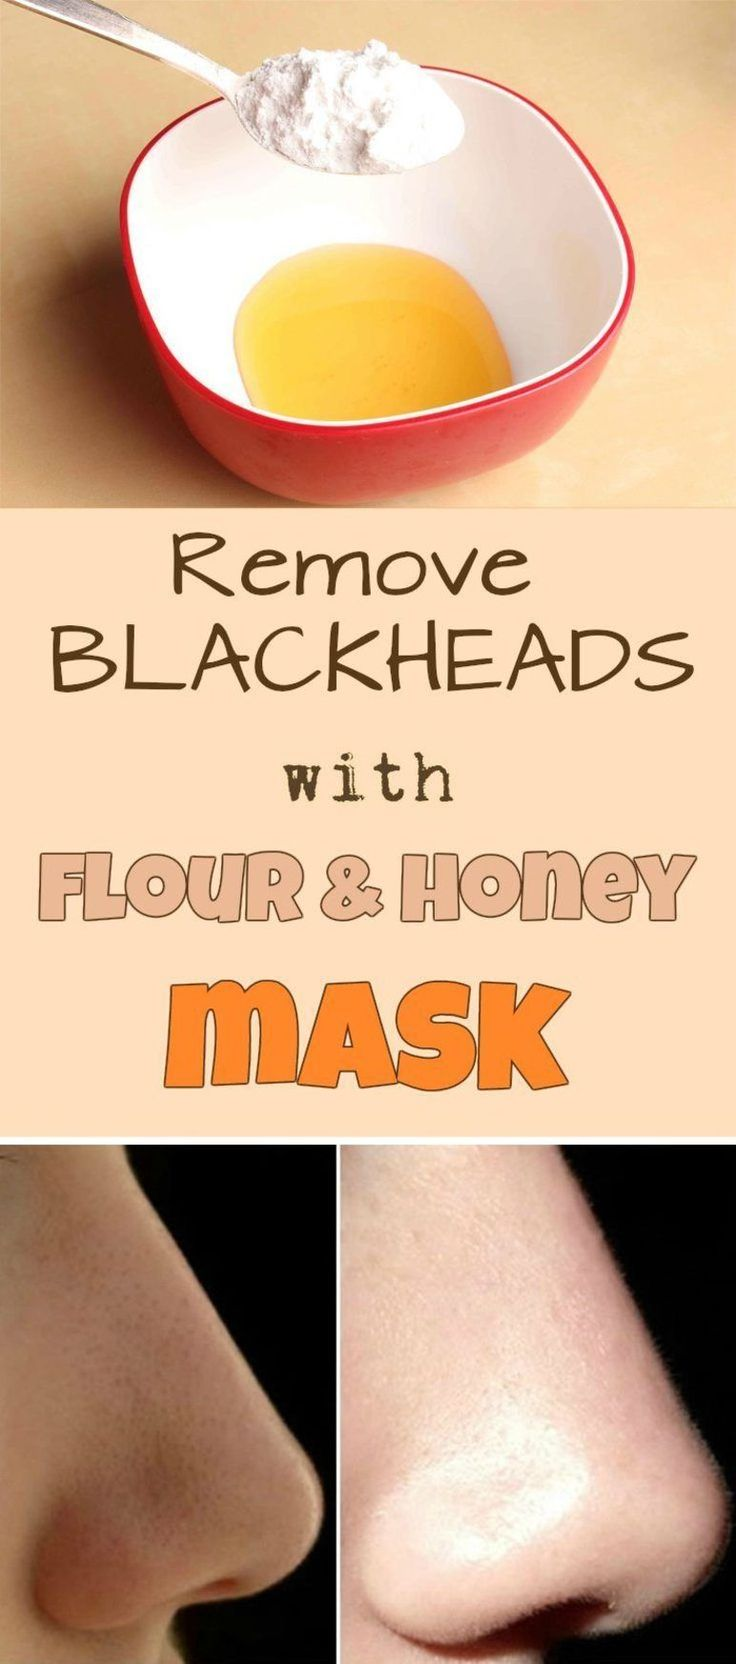 diy acne mask - Acne Scar Mask - Benefits of Sulfur Mask For Acne * Check out this great article. #HomemadeAcneMask #homemadefacemasksforblackheads